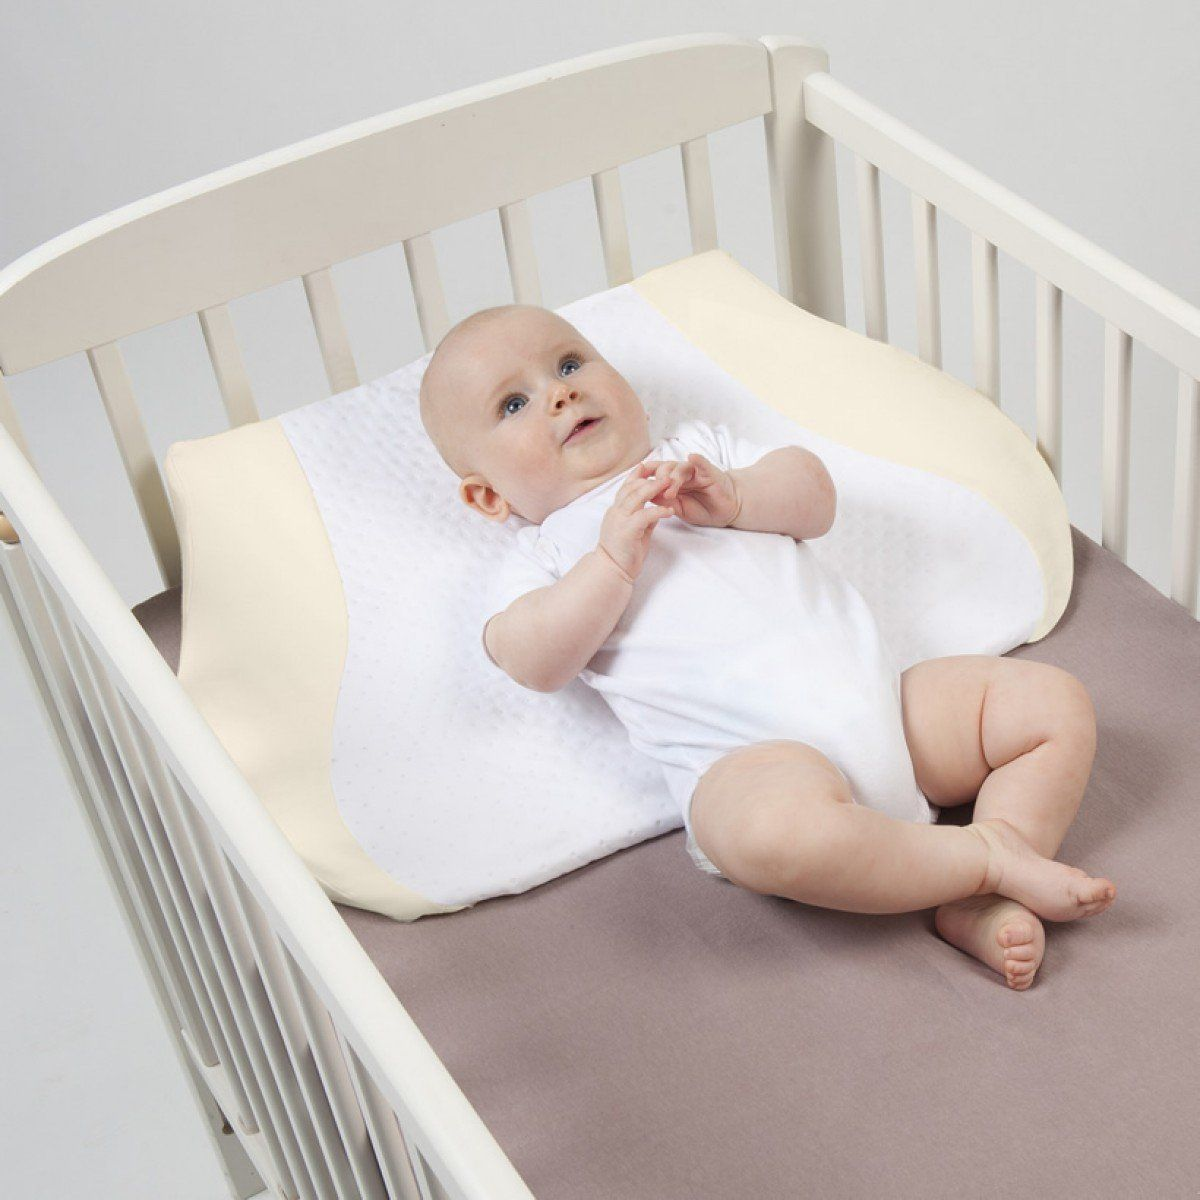 Crib wedges for babies - Babymoov Cosymat Crib Wedge With Baby